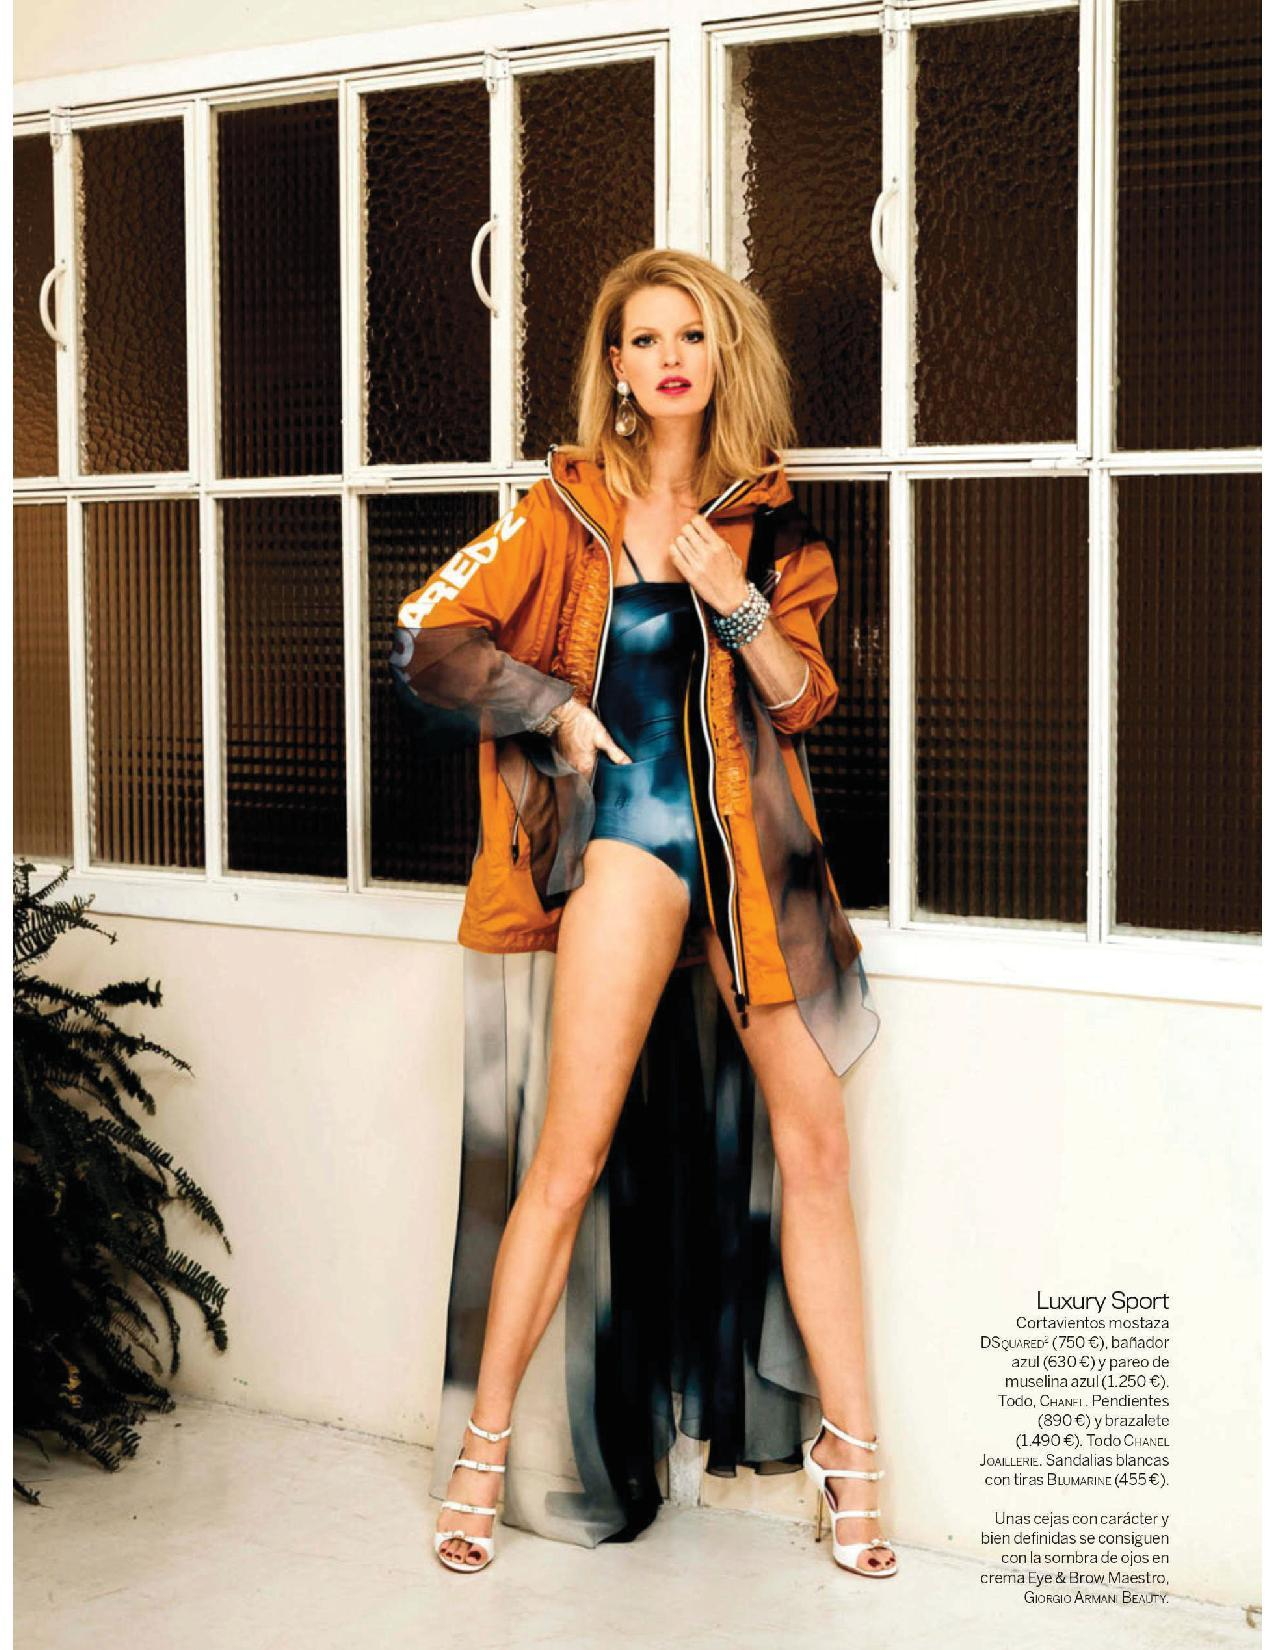 Feet Caroline Winberg nudes (86 foto and video), Topless, Cleavage, Feet, cameltoe 2006